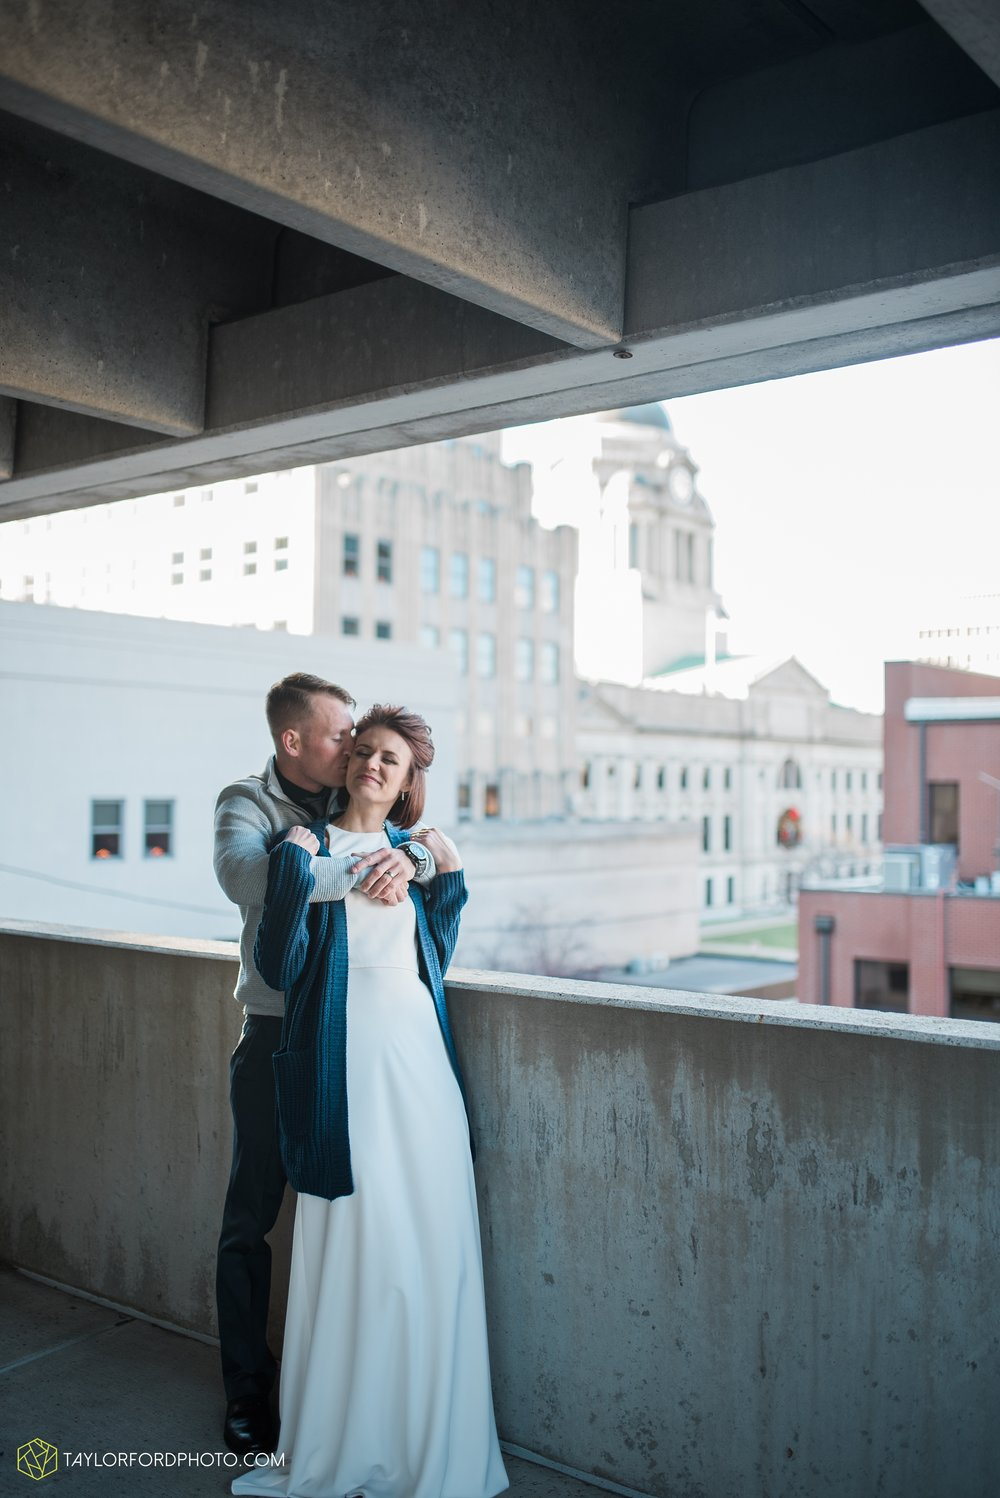 fort-wayne-indiana-elopement-wedding-hoppy-gnome-gnometown-brewing-photographer-Taylor-Ford-Photography_5806.jpg